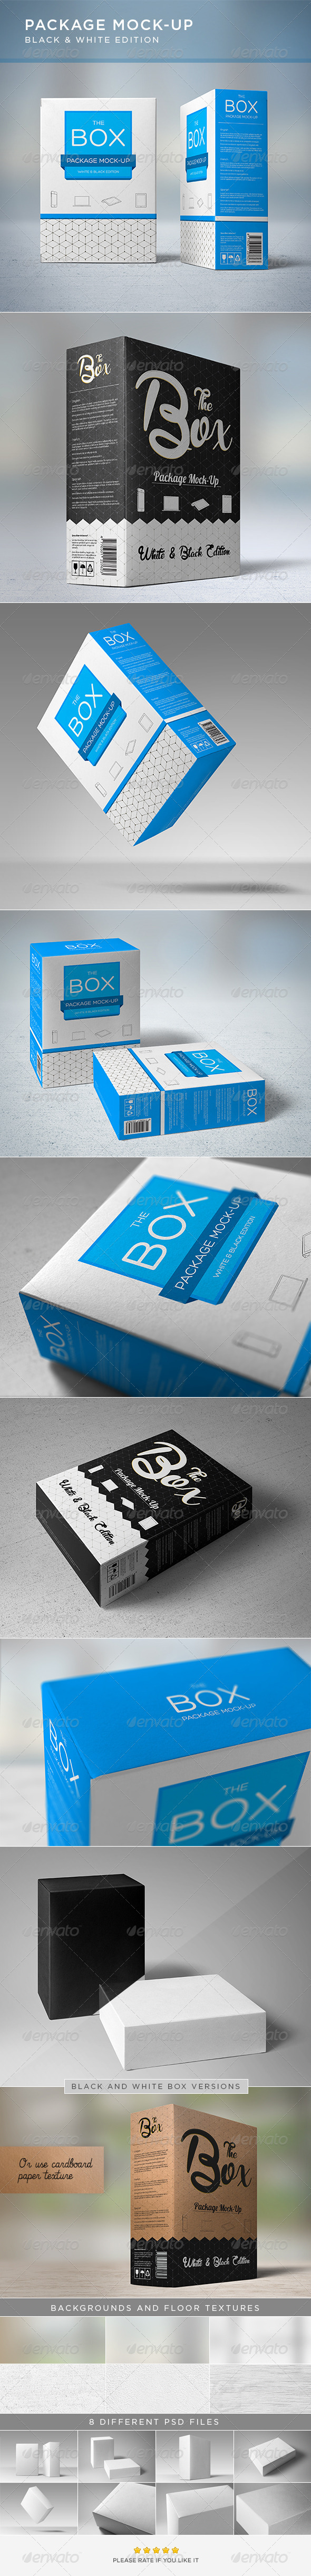 GraphicRiver Package Mock-Up 6634298